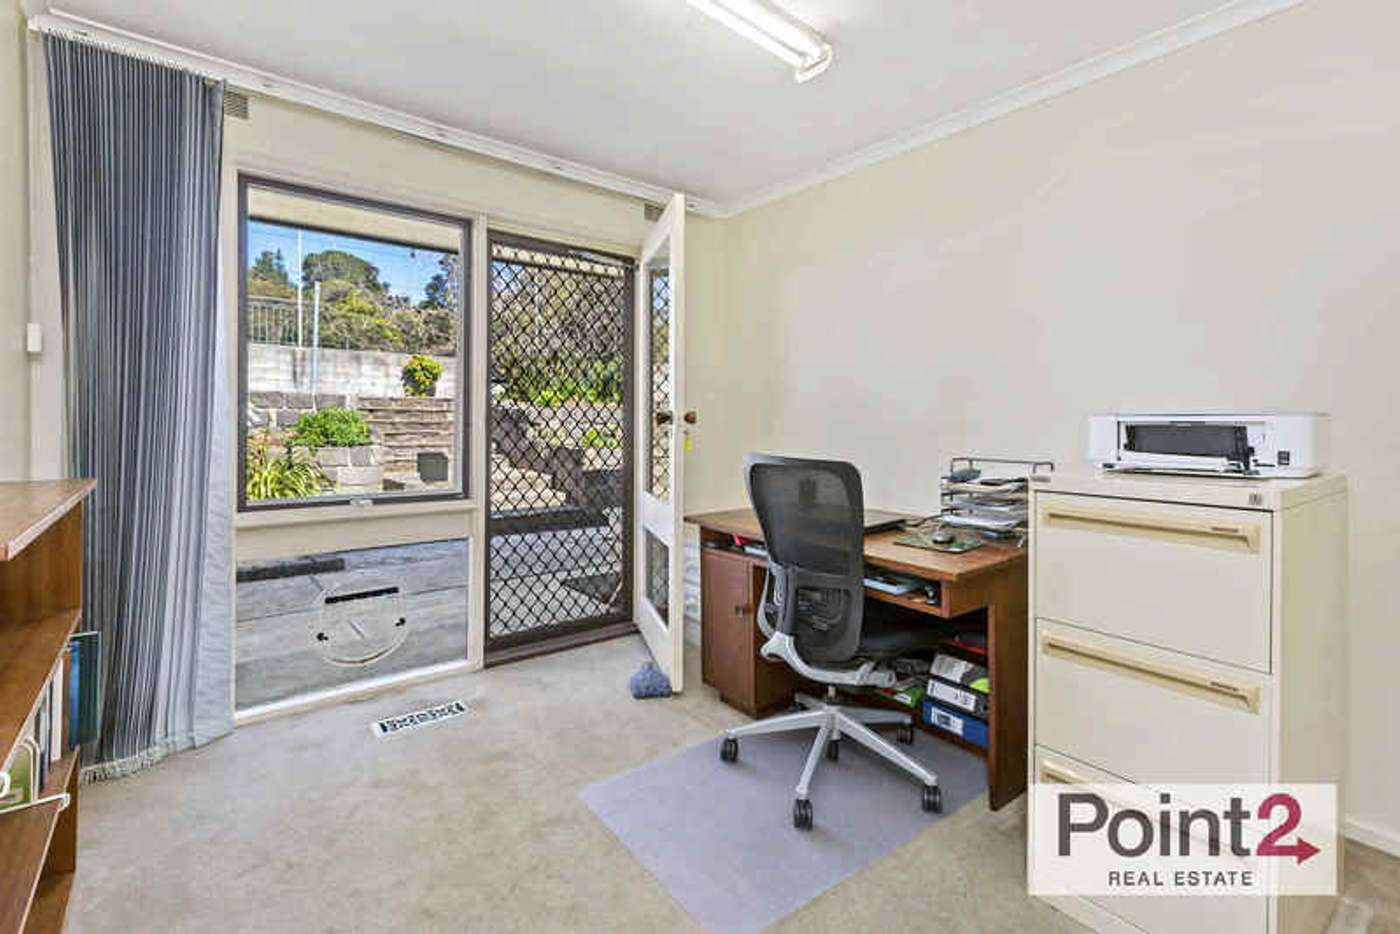 Seventh view of Homely house listing, 106 Mather Road, Mount Eliza VIC 3930